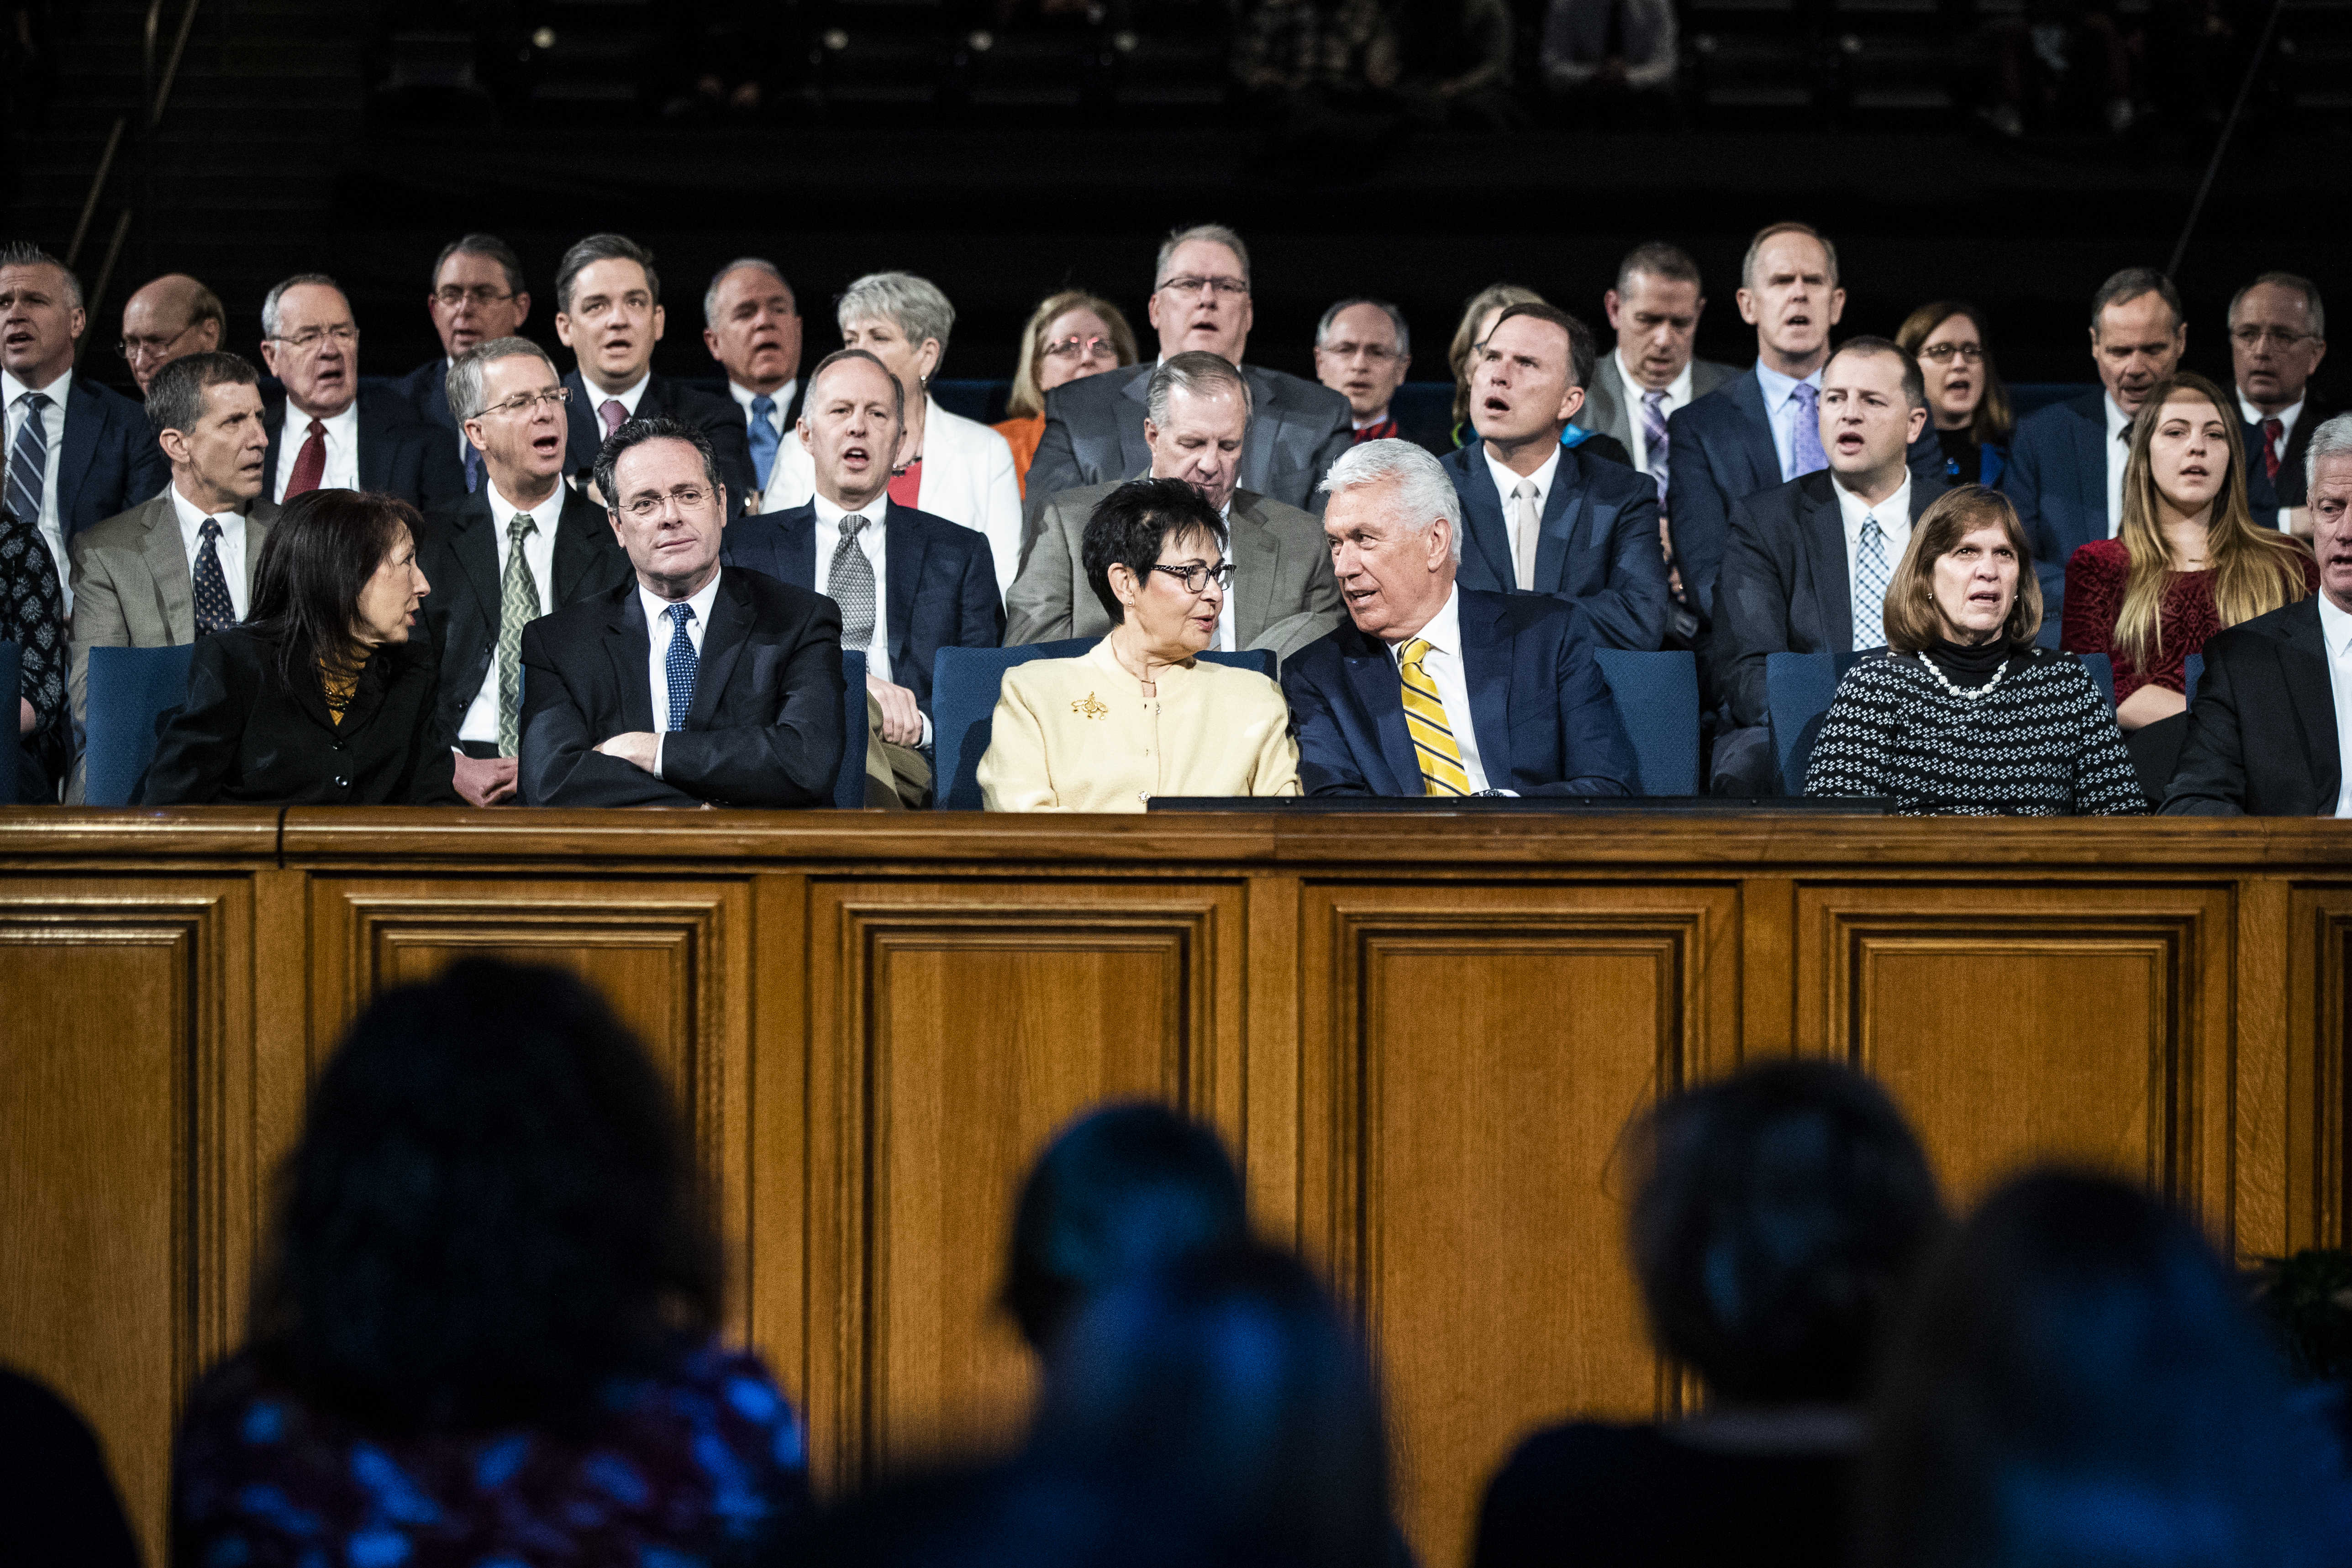 Elder Dieter F. Uchtdorf of the Quorum of the Twelve Apostles sits on the stand with his wife Harriet R. Uchtdorf during a devotional on the BYU campus in Provo, Utah on Tuesday, Jan. 15, 2019.